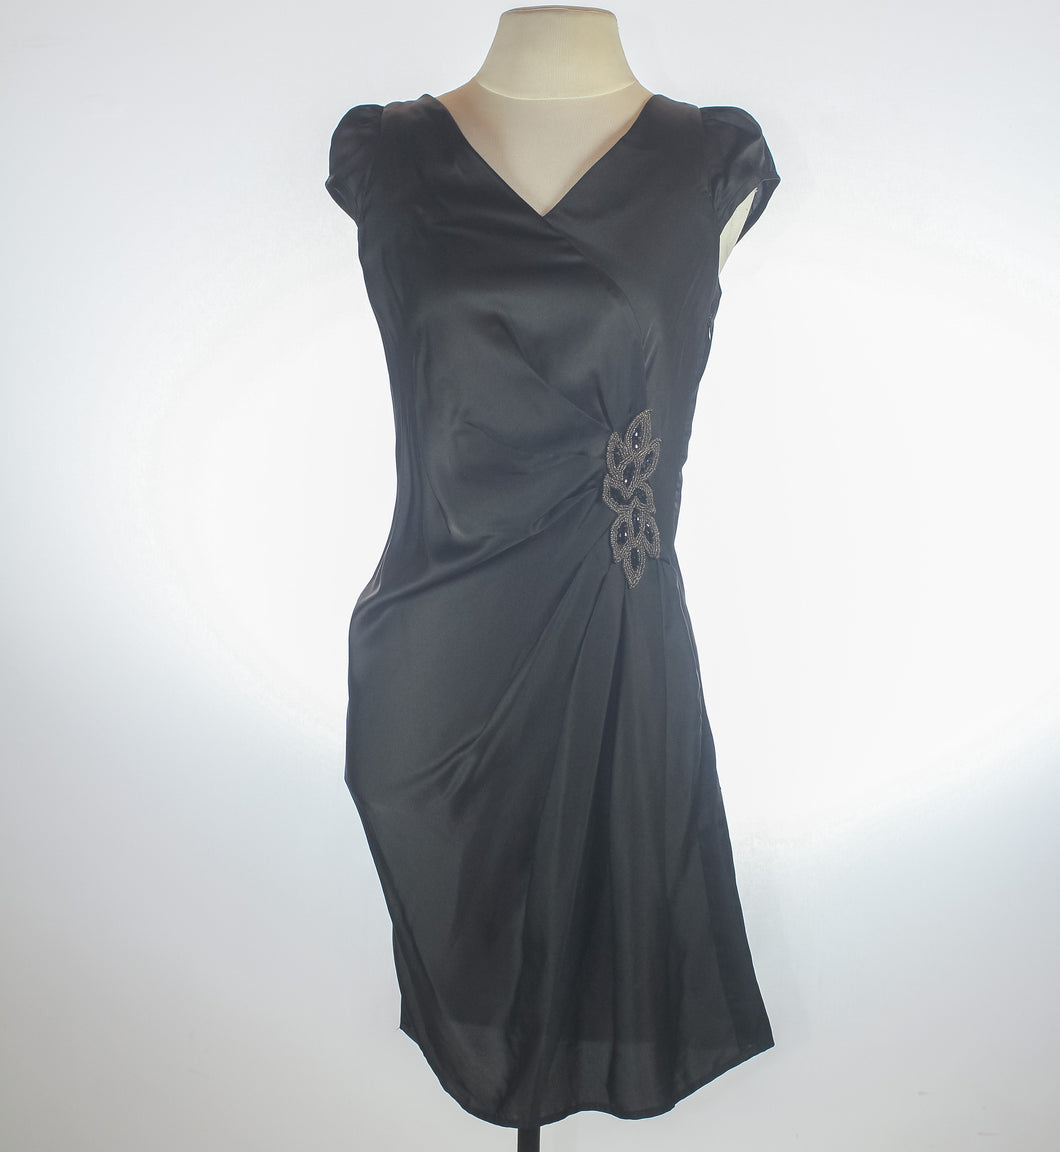 BCBG Black Satin Dress